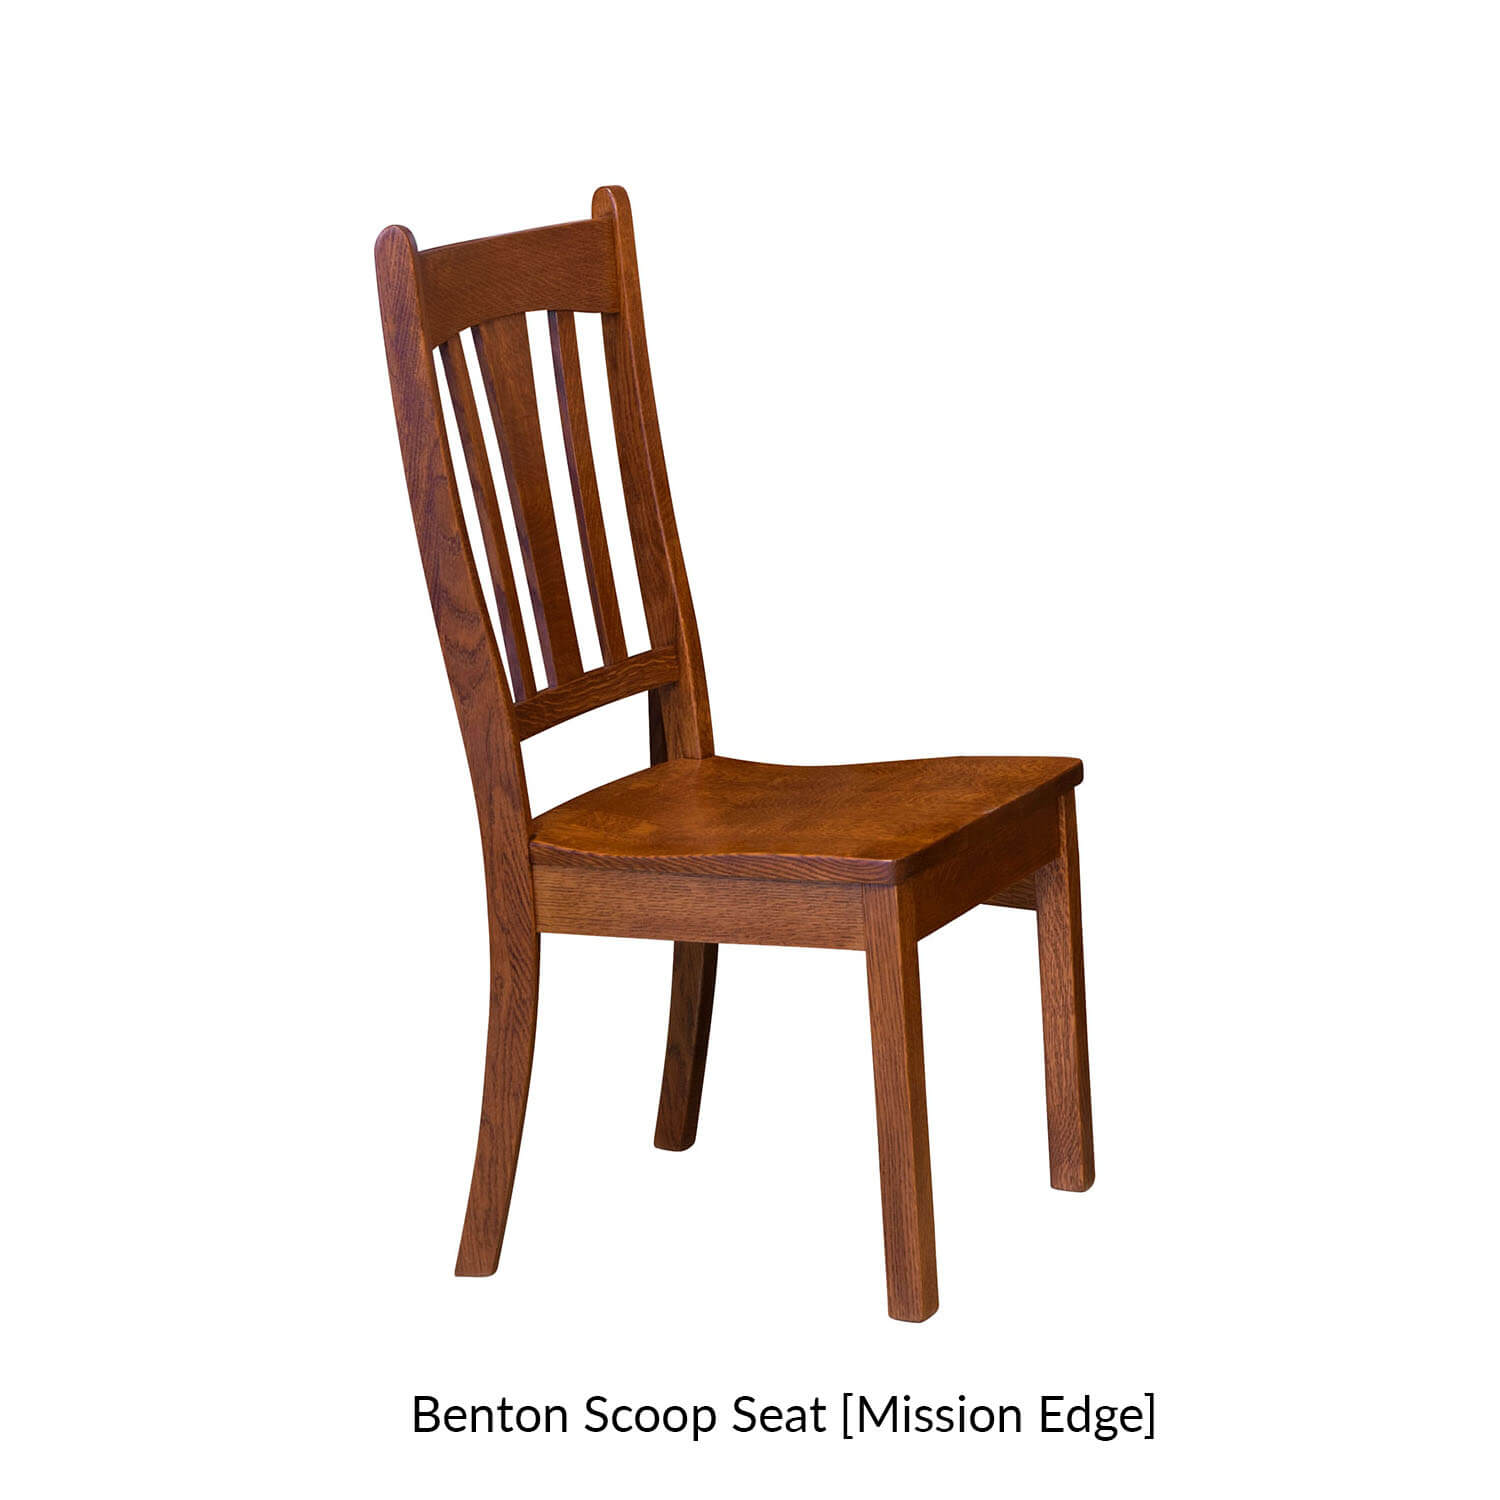 1.1-benton-scoop-seat-mission-edge-.jpg